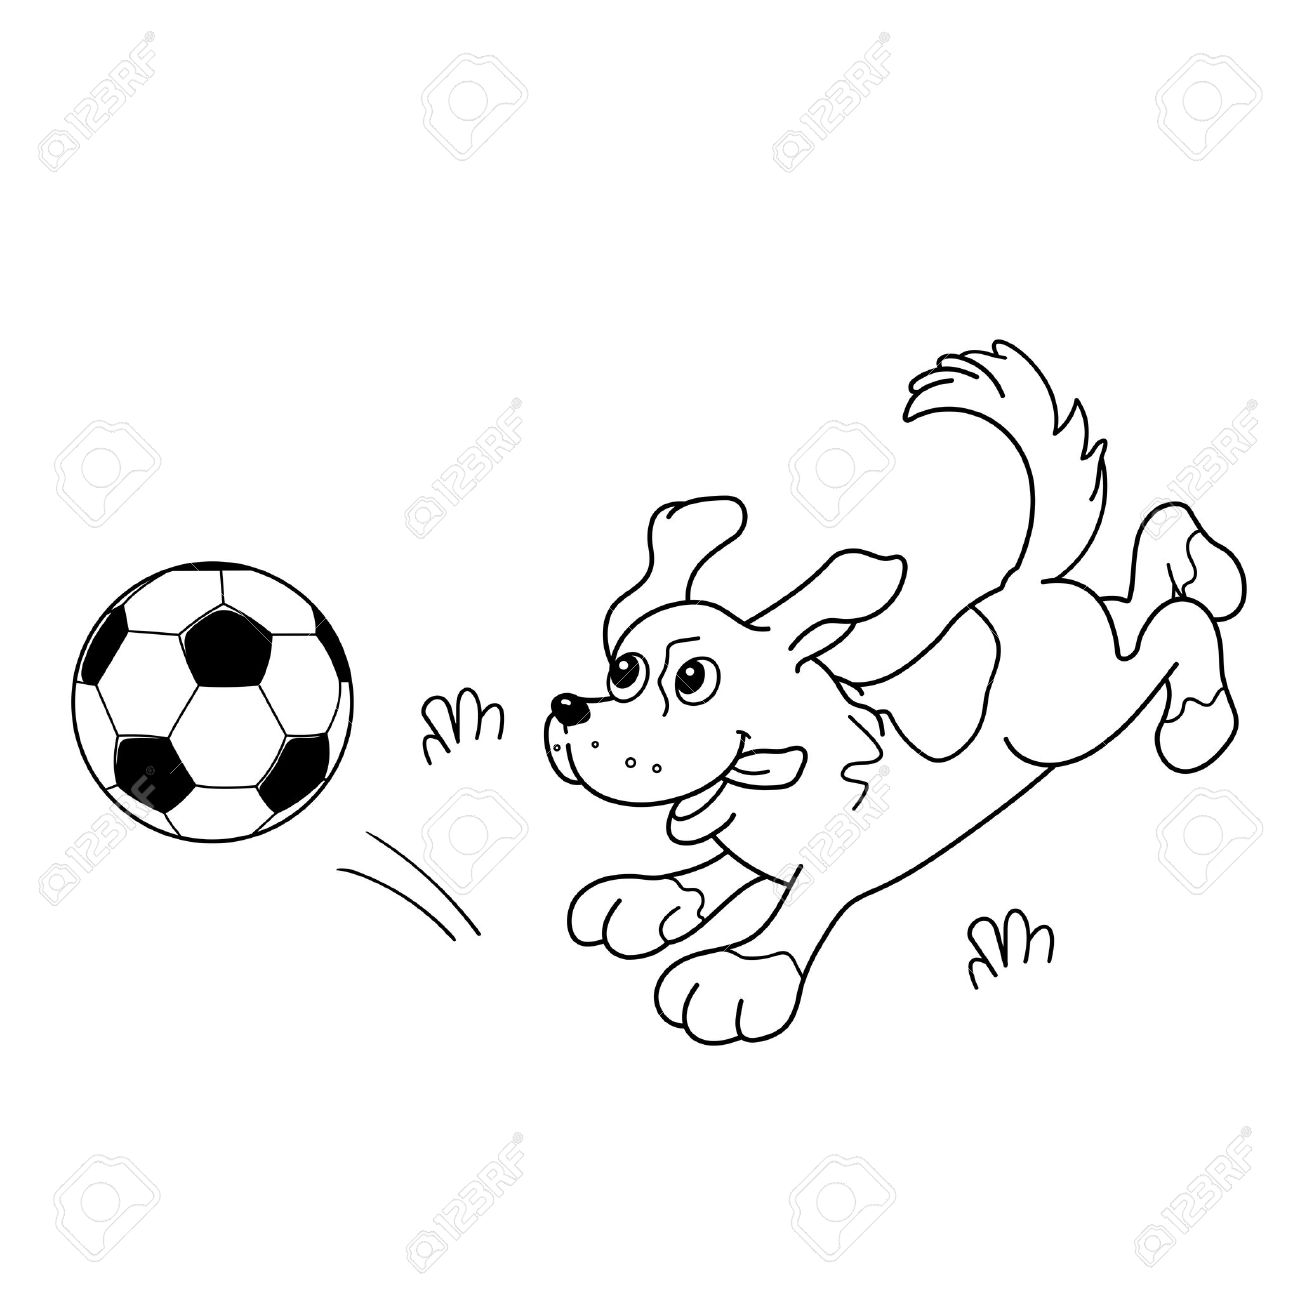 1300x1300 Coloring Page Outline Of Cartoon Dog With Soccer Ball. Coloring